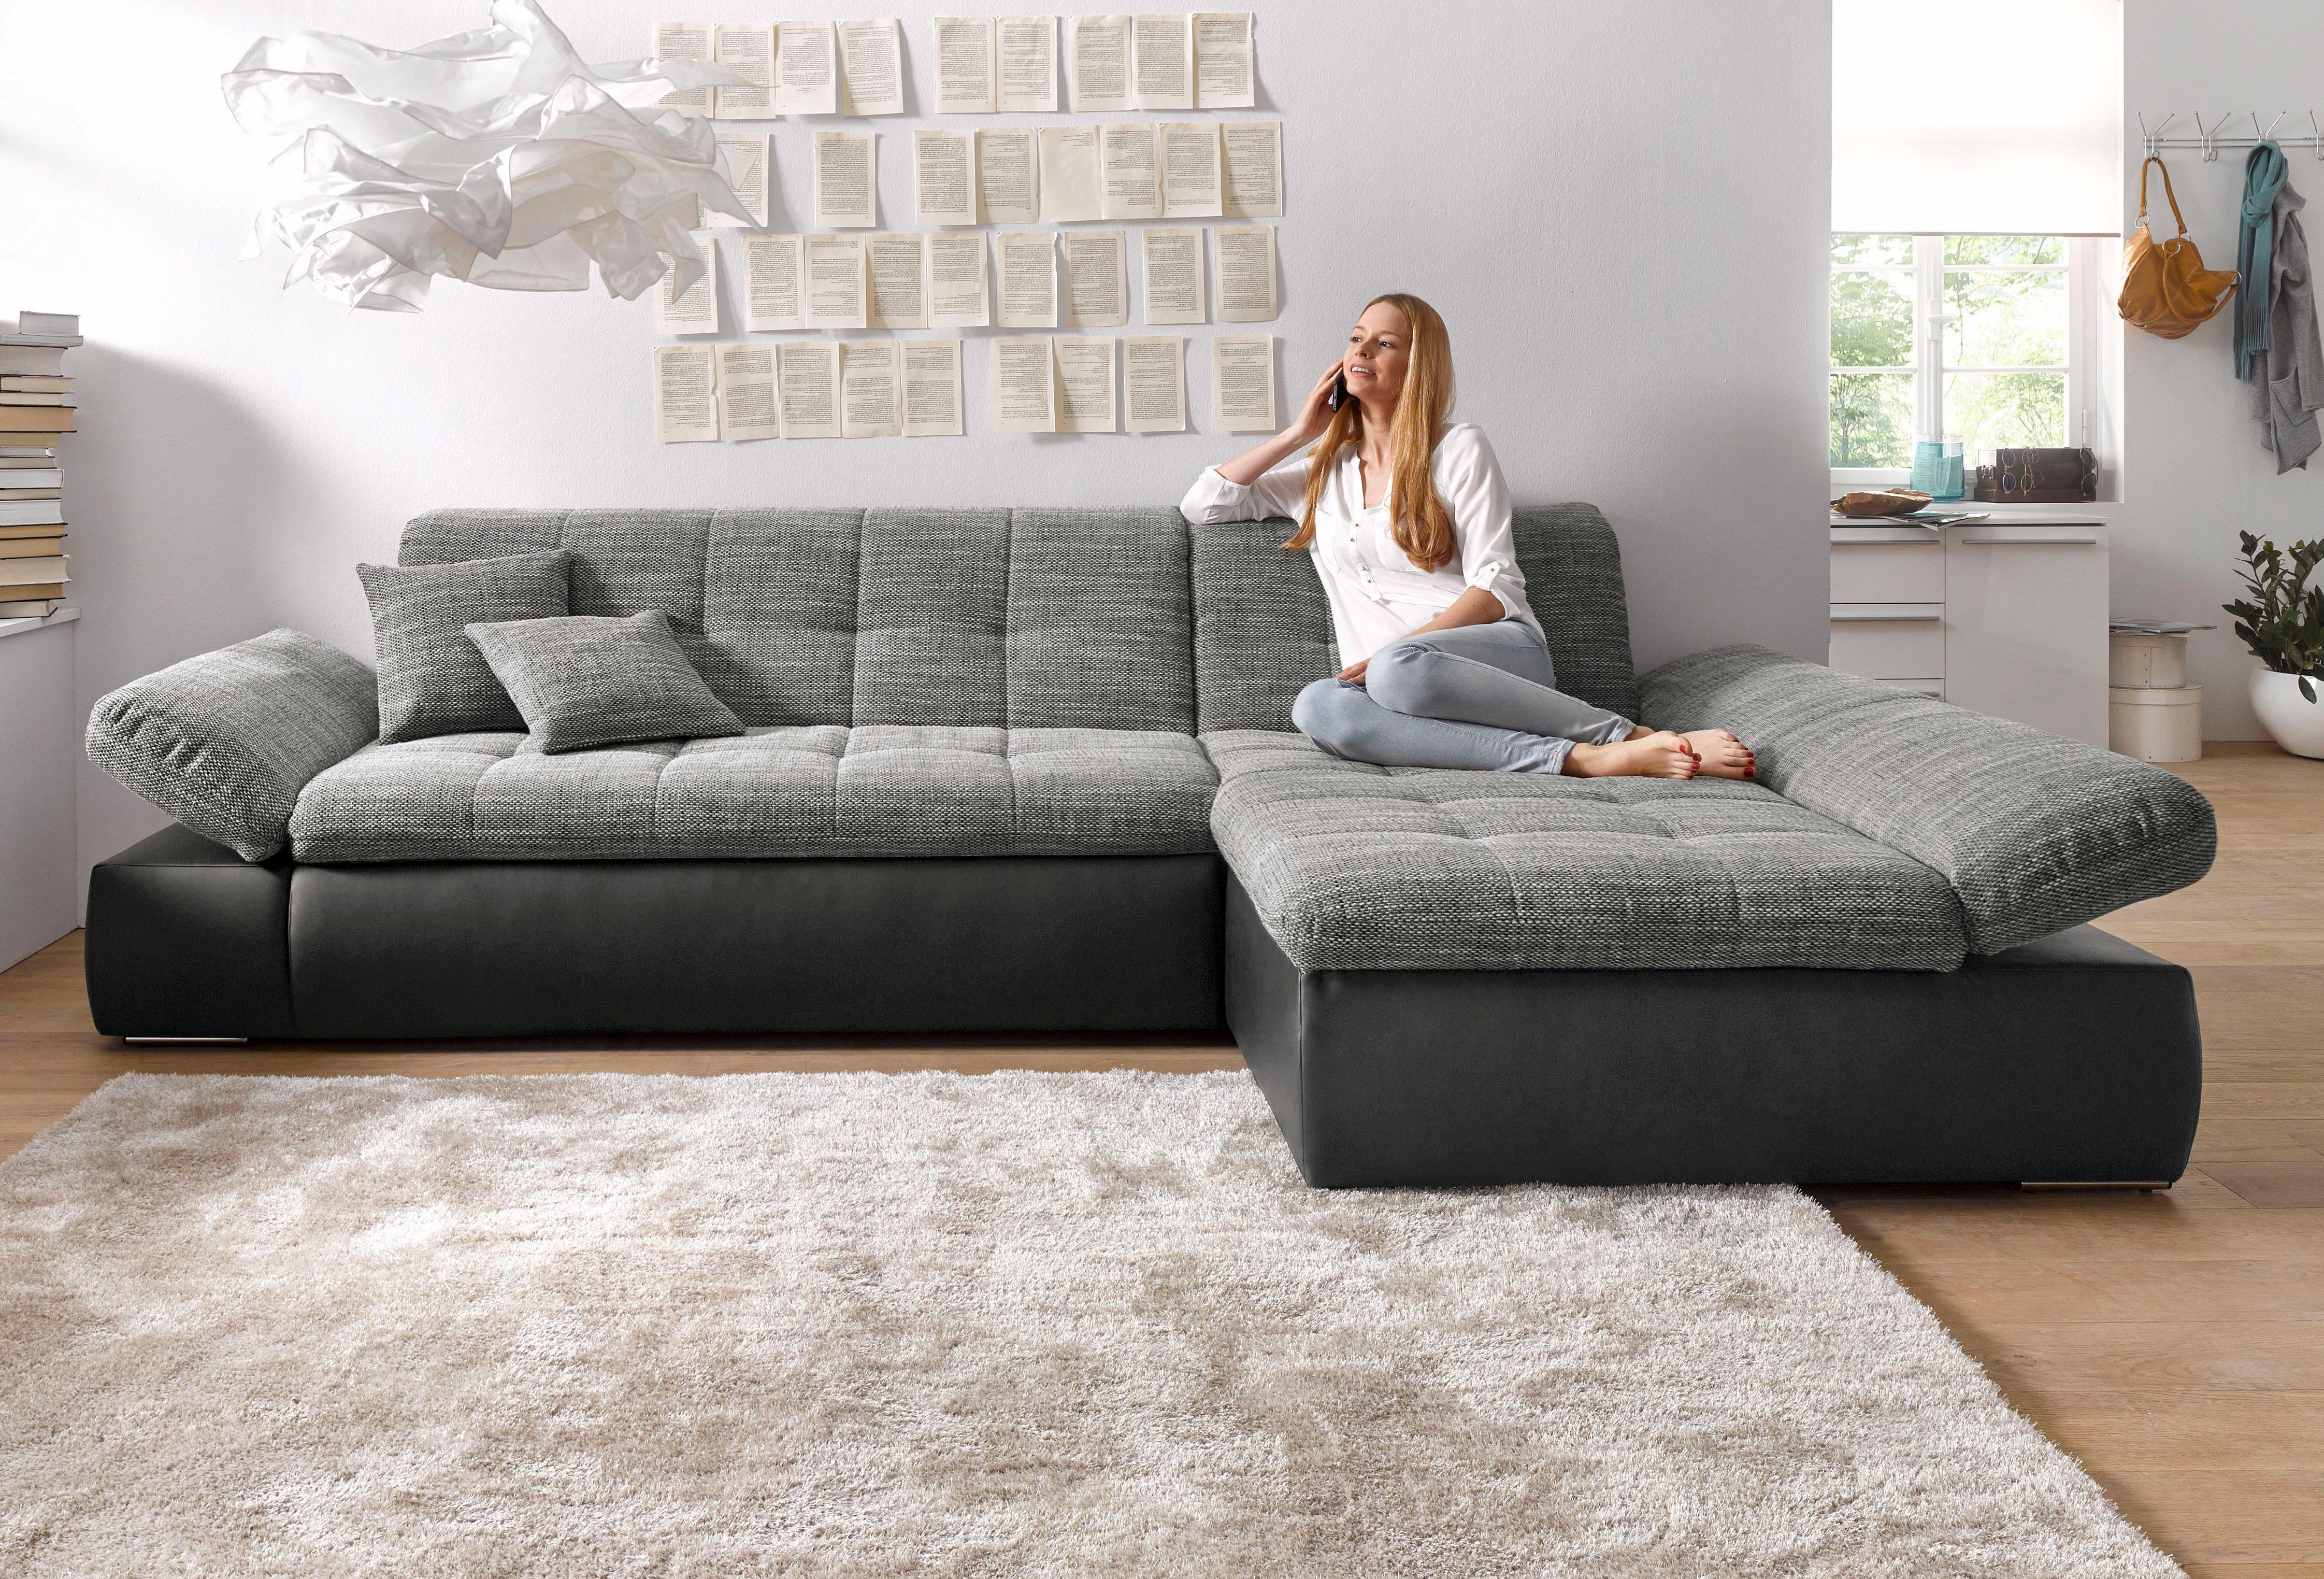 DOMO collection Ecksofa | Wohnzimmer > Sofas & Couches > Ecksofas & Eckcouches | DOMO COLLECTION